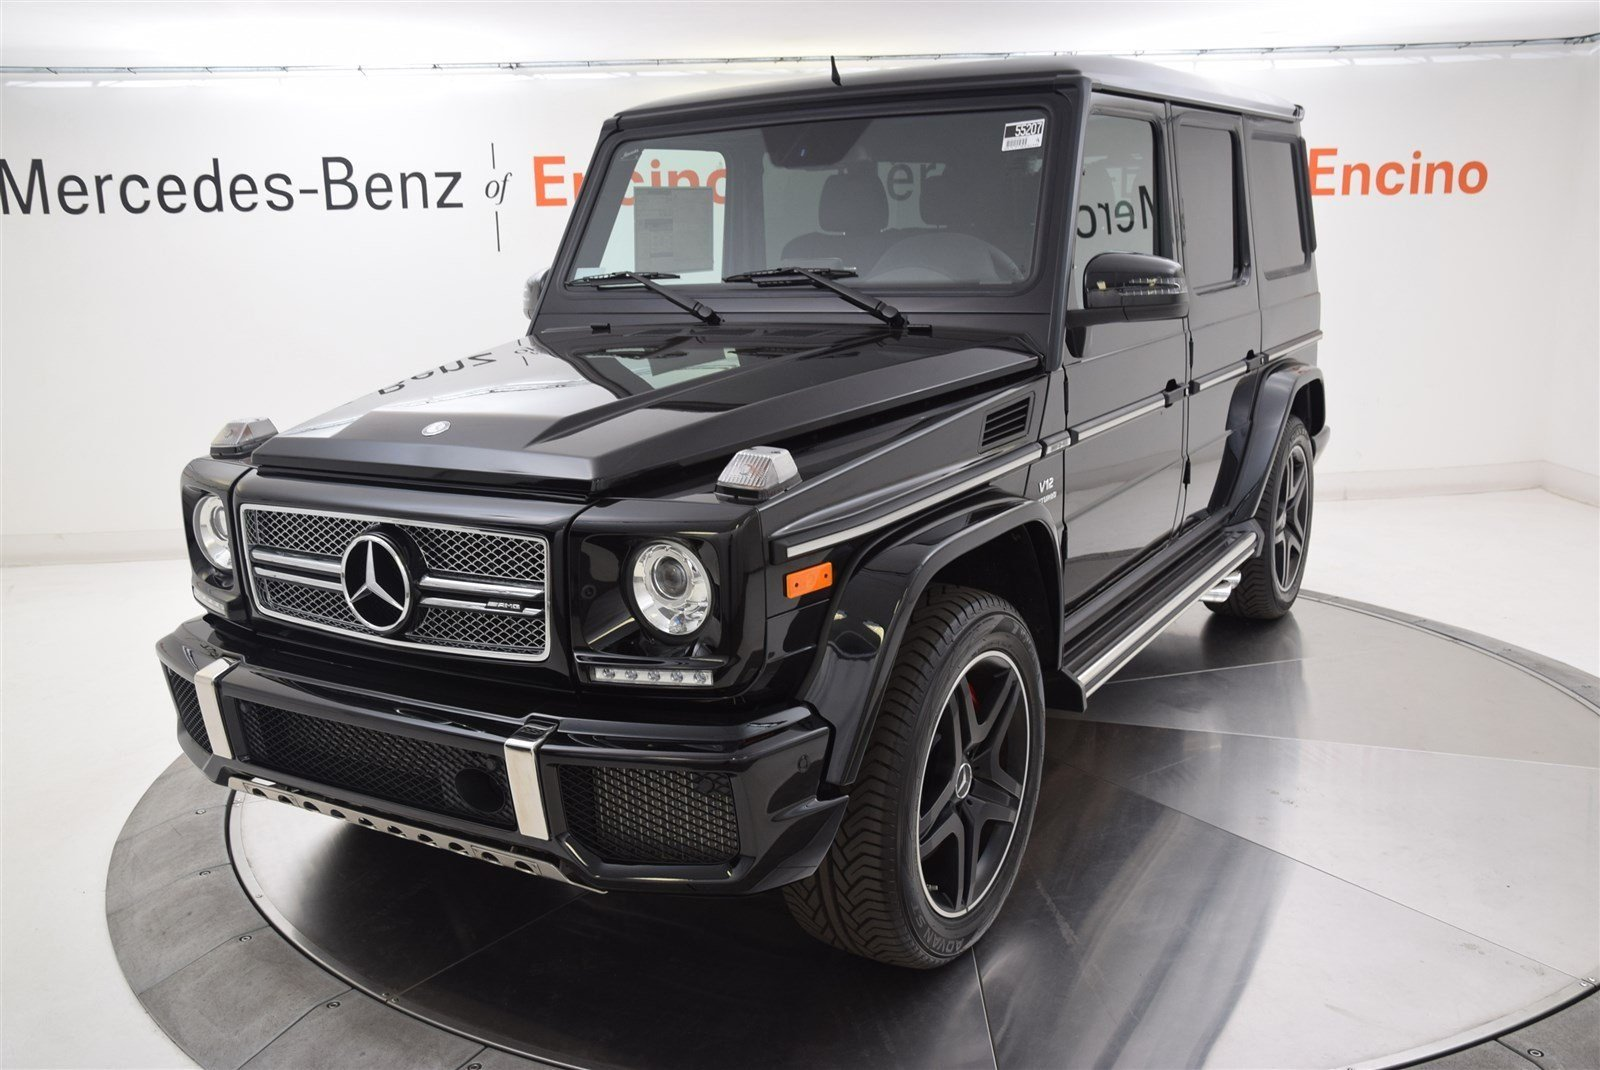 New 2016 mercedes benz g class g 65 amg suv suv in encino for Mercedes benz g class amg